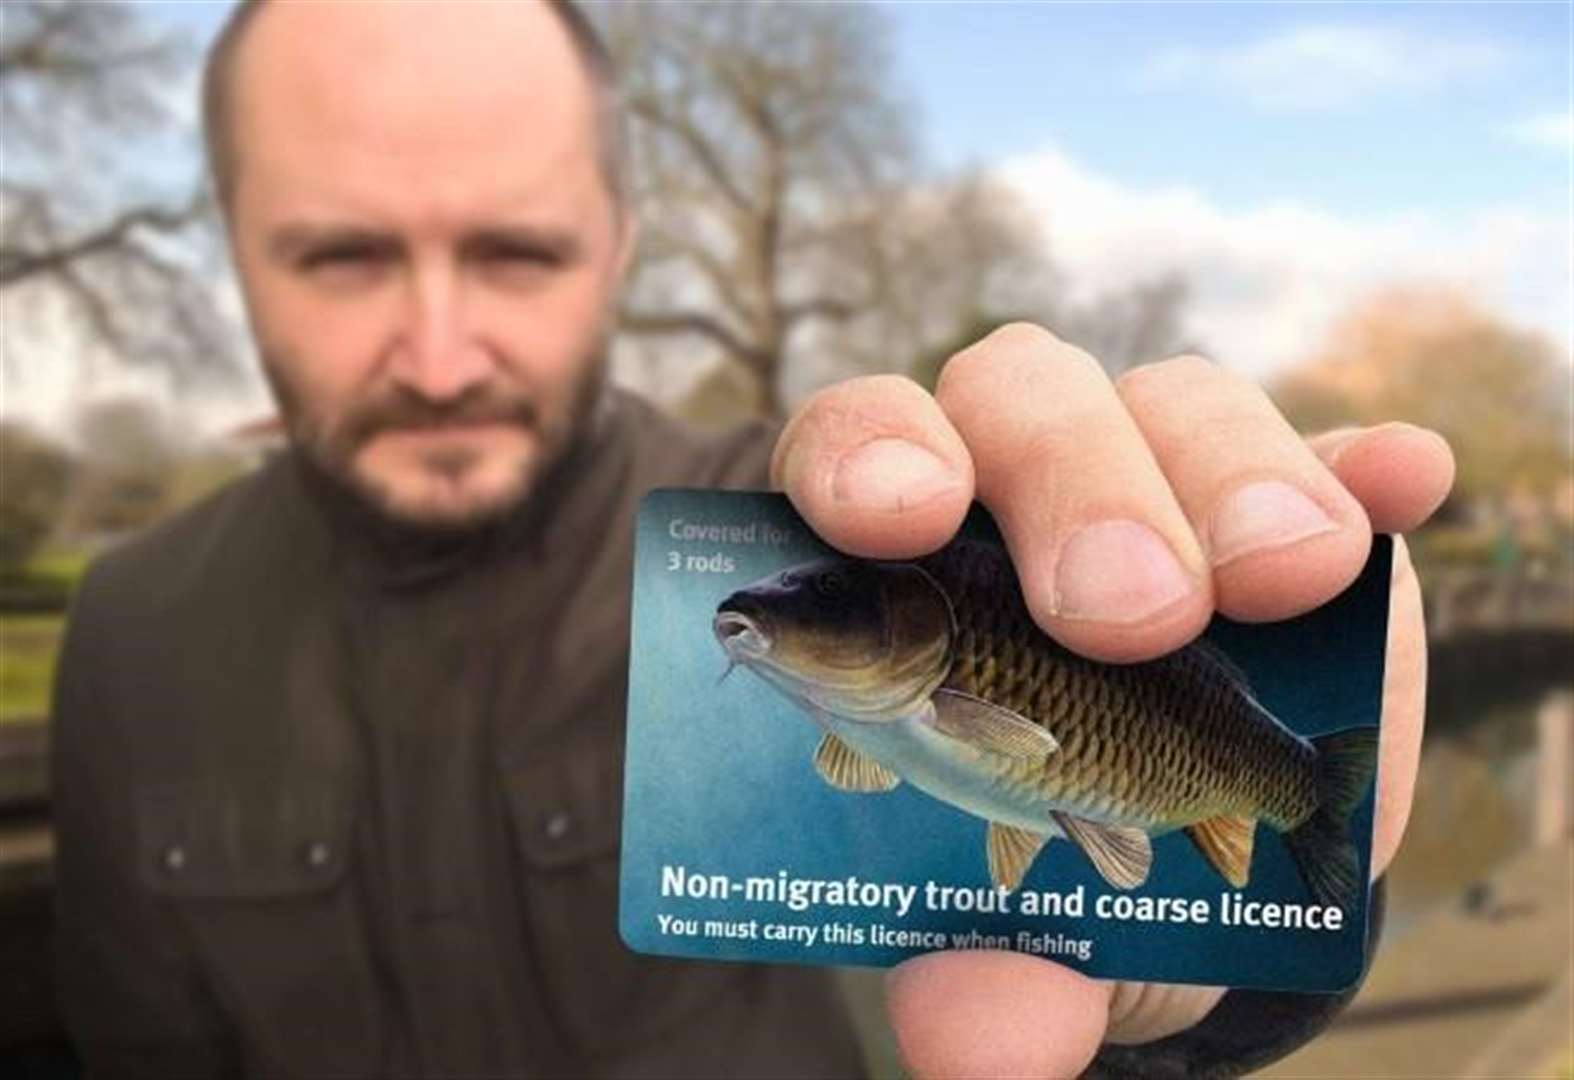 Fenland anglers seeking rod licences: Environment Agency warns about internet scammers intent on getting your money with fake websites